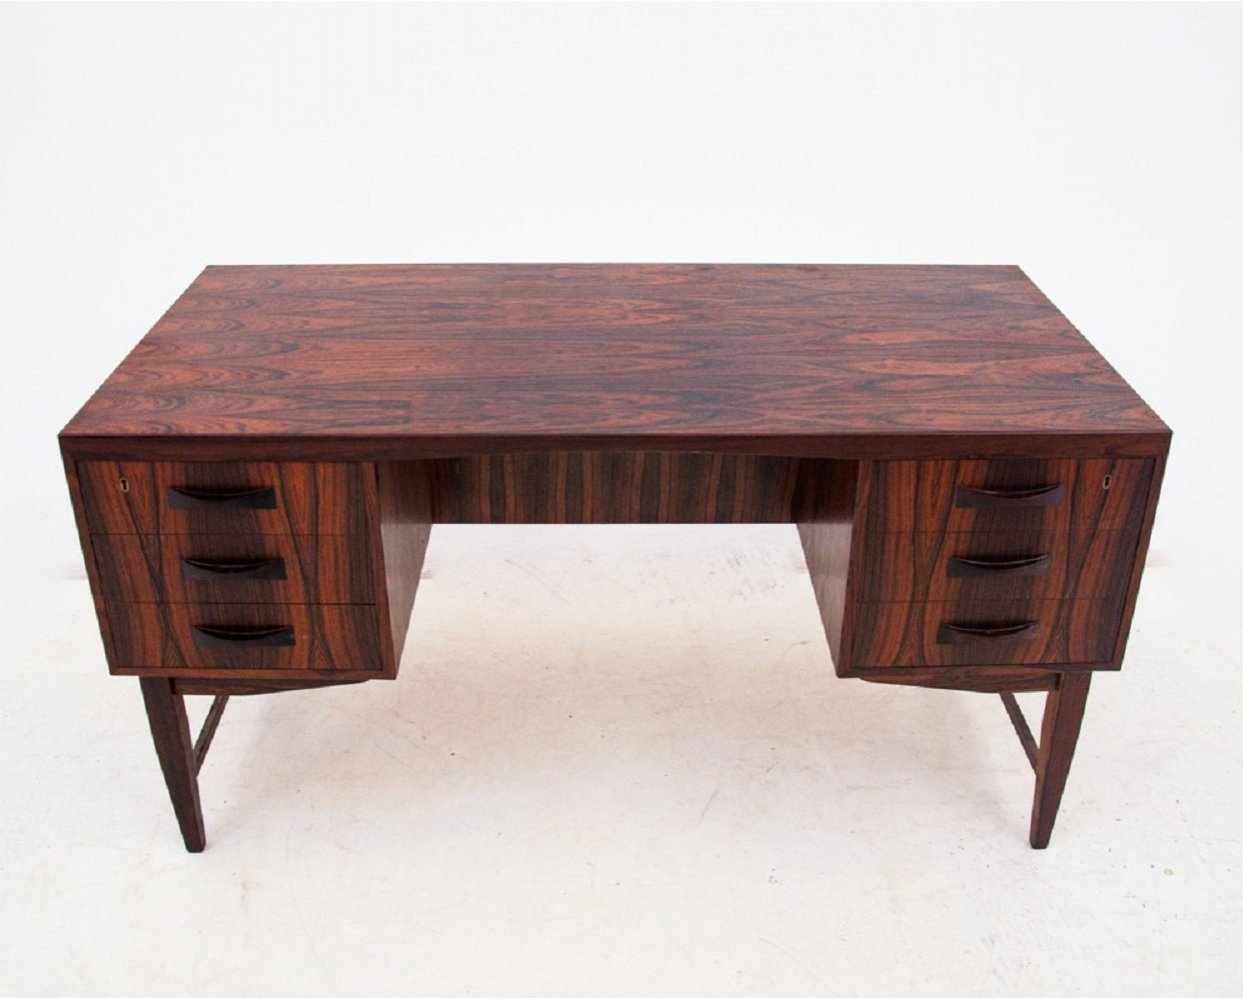 Rosewood desk, Danish design 1960s